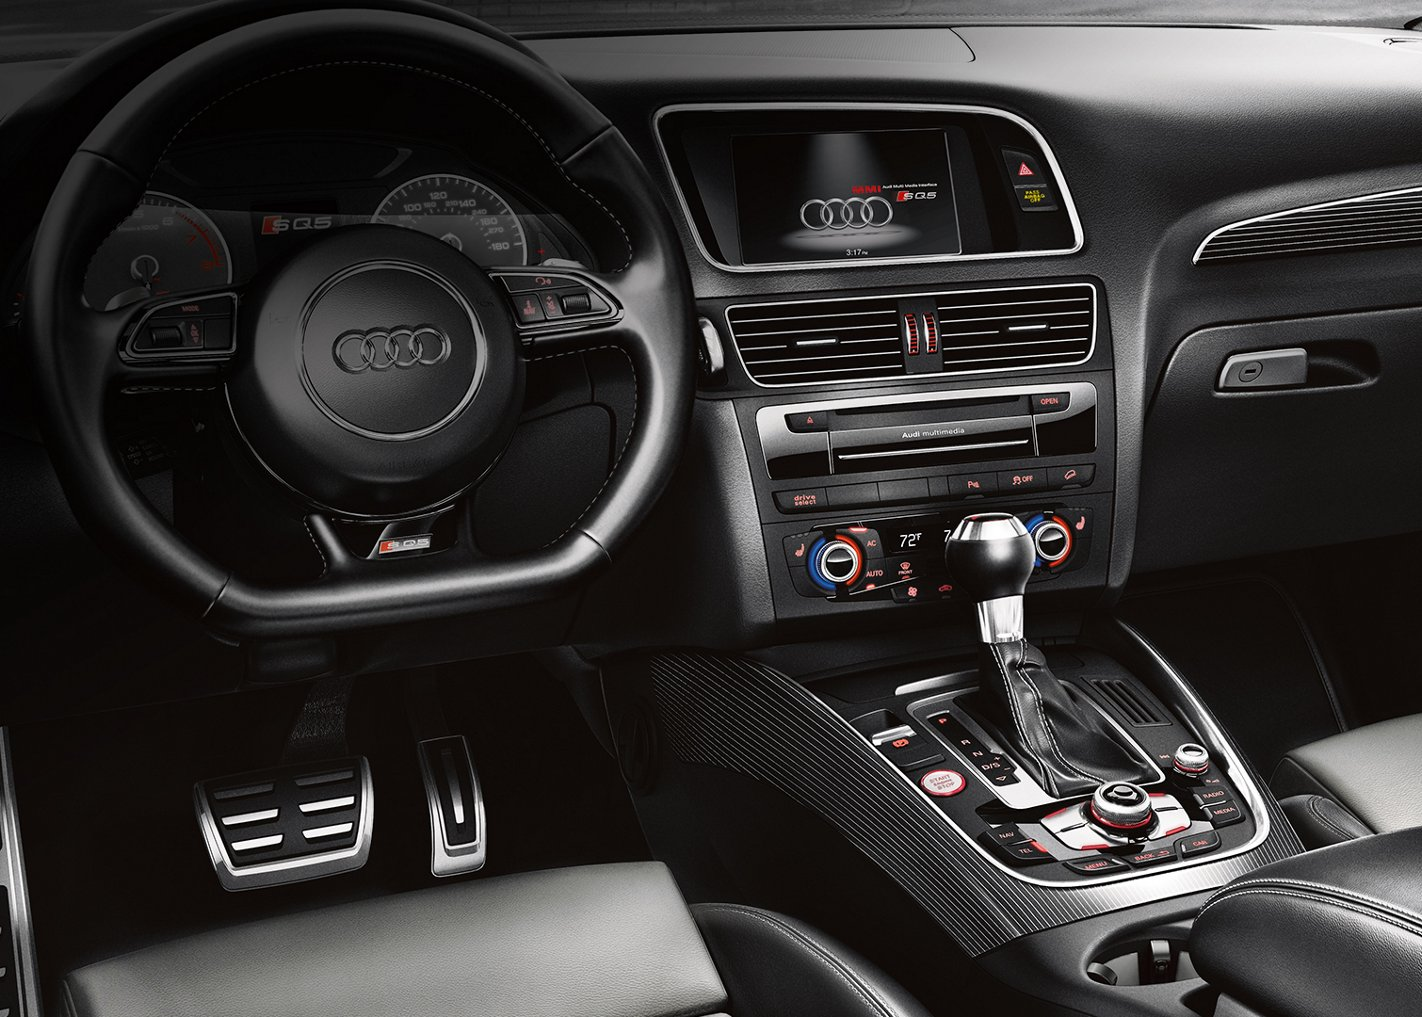 New Audi SQ5 Interior main image